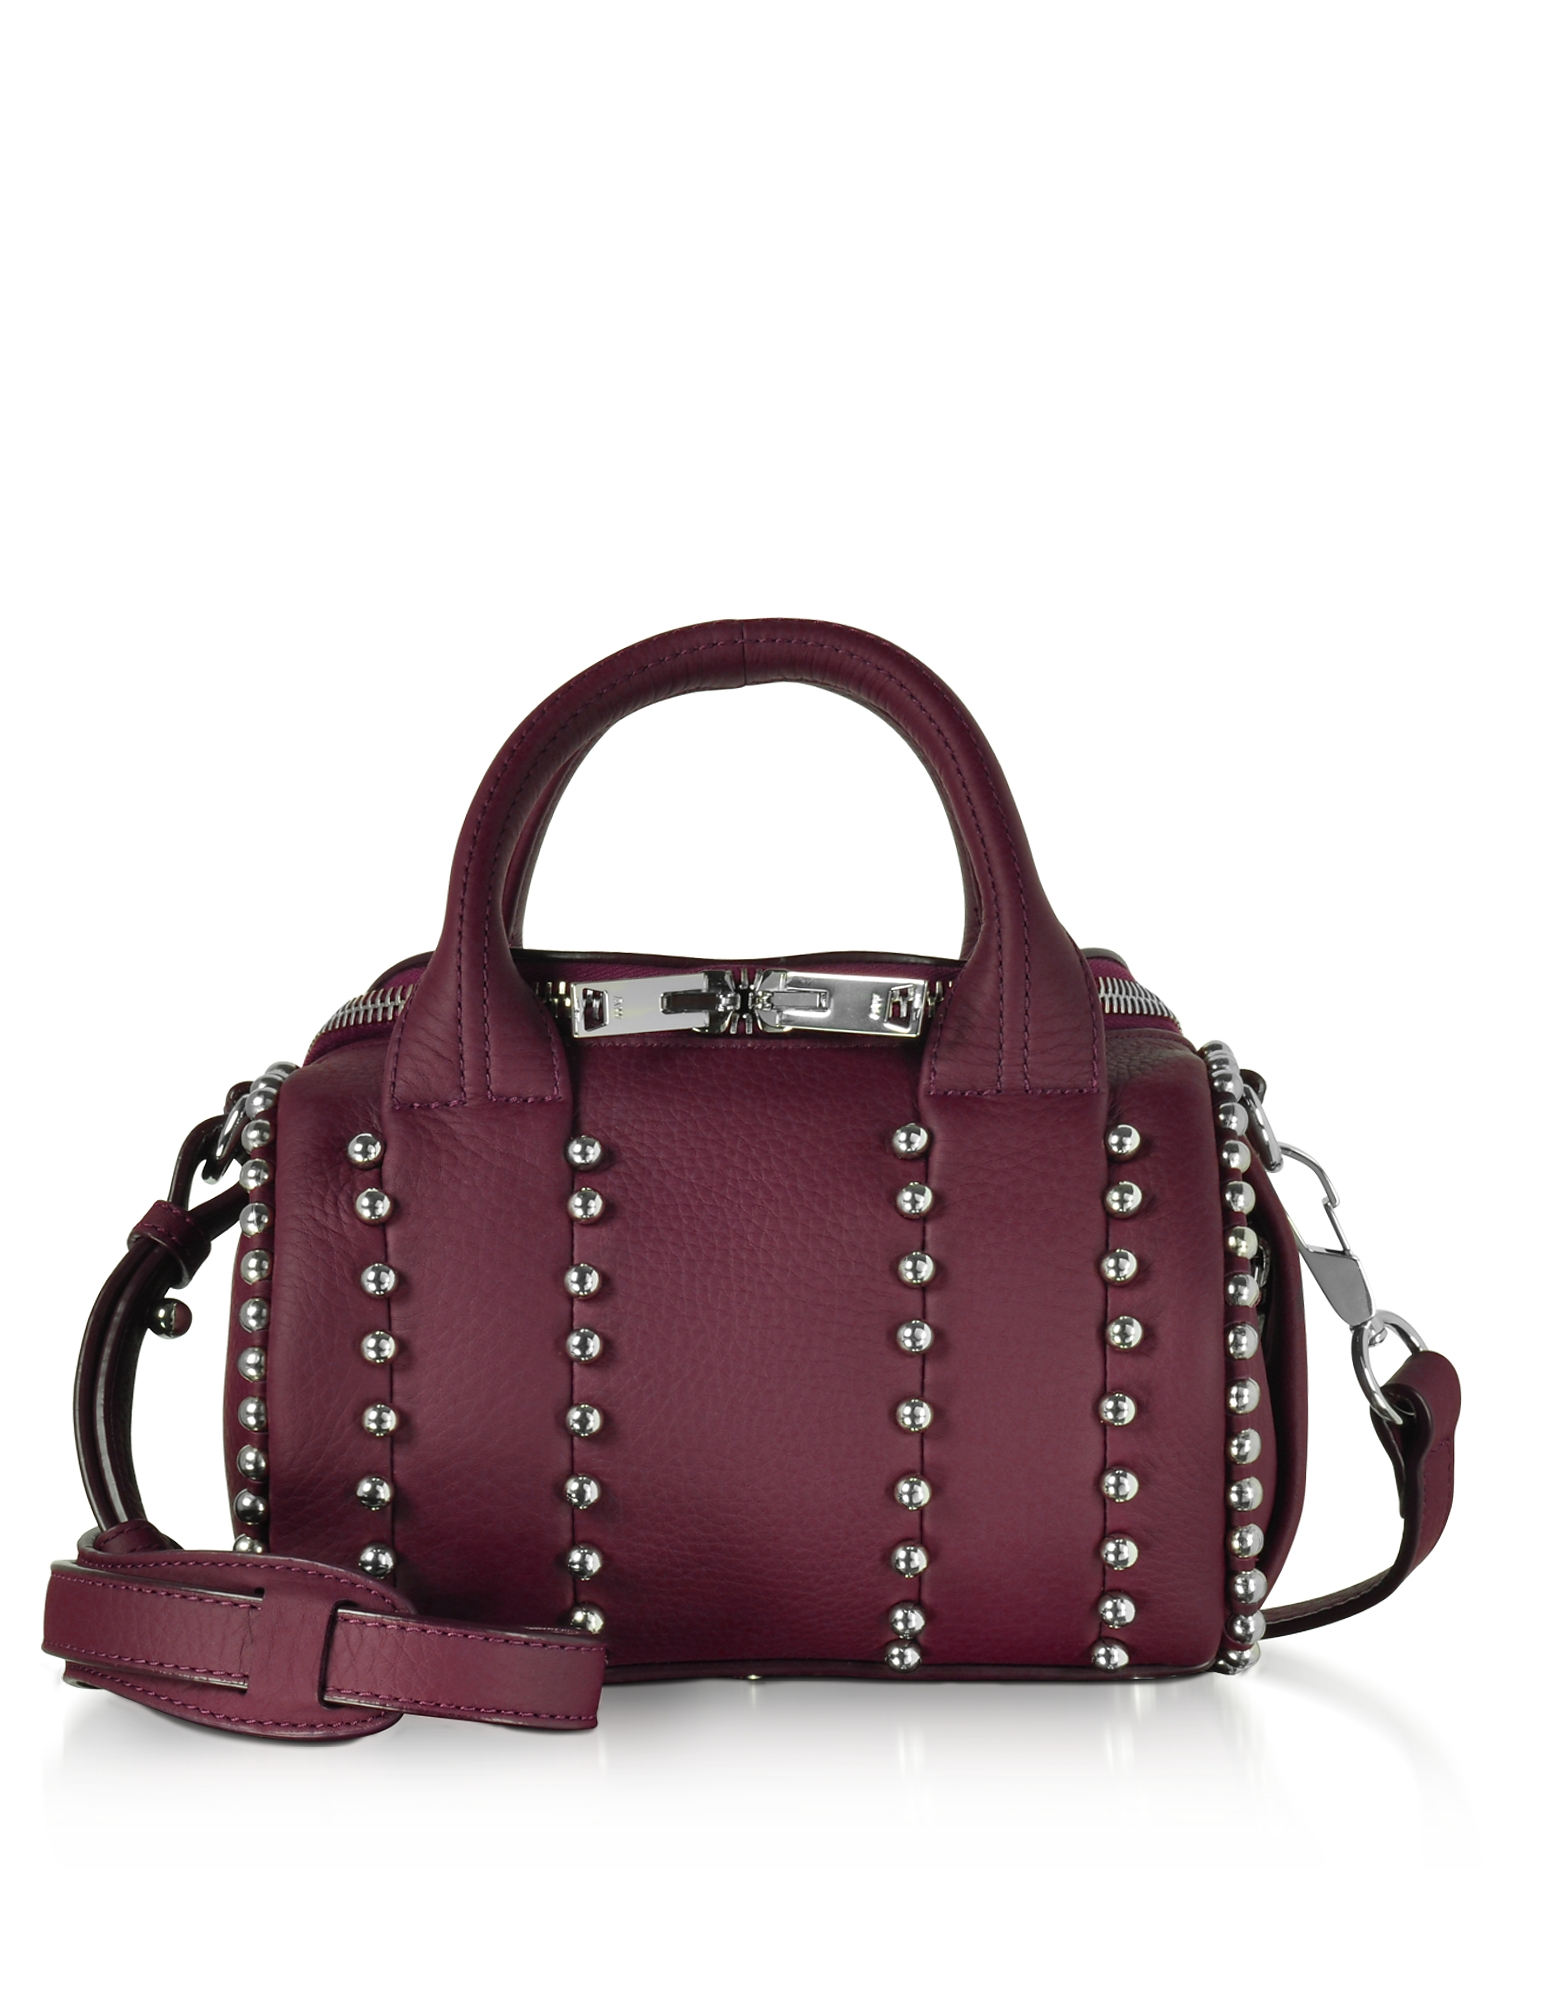 Alexander Wang Handbags, Mini Rockie Ball Studd Beet Leather Satchel